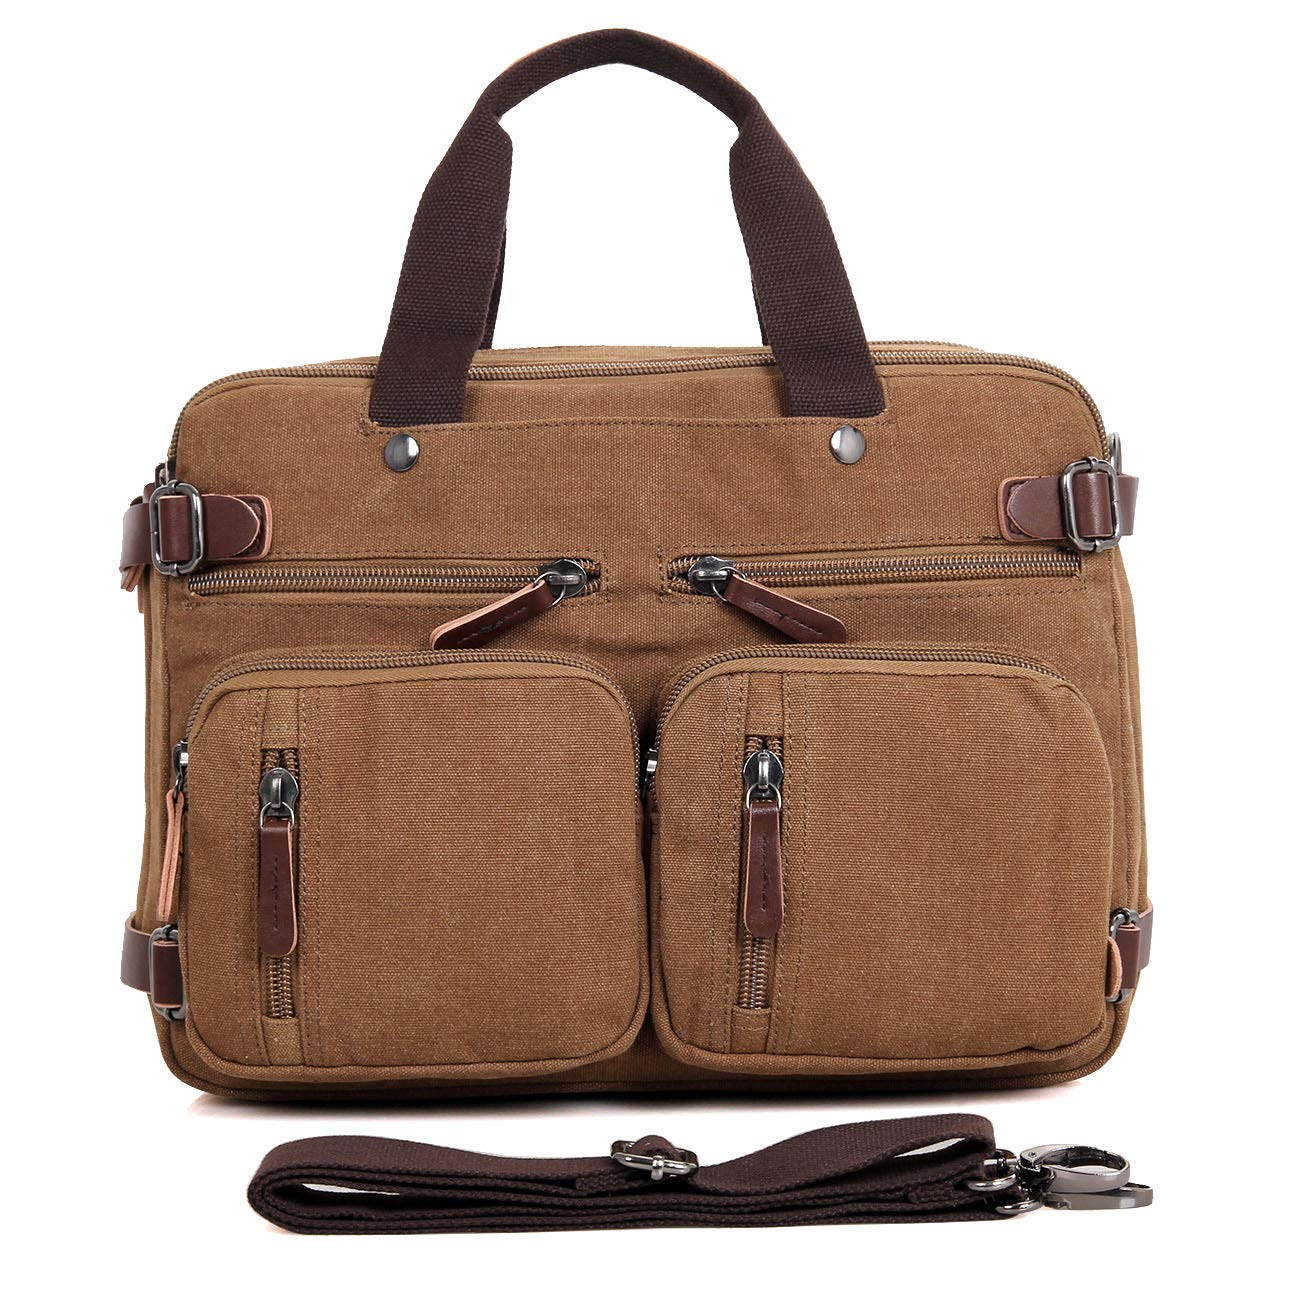 Clean Vintage Laptop Bag Hybrid Backpack Messenger Bag Convertible Briefcase Backpack Satchel for Men Women BookBag Rucksack Daypack Waxed Canvas Leather Brown